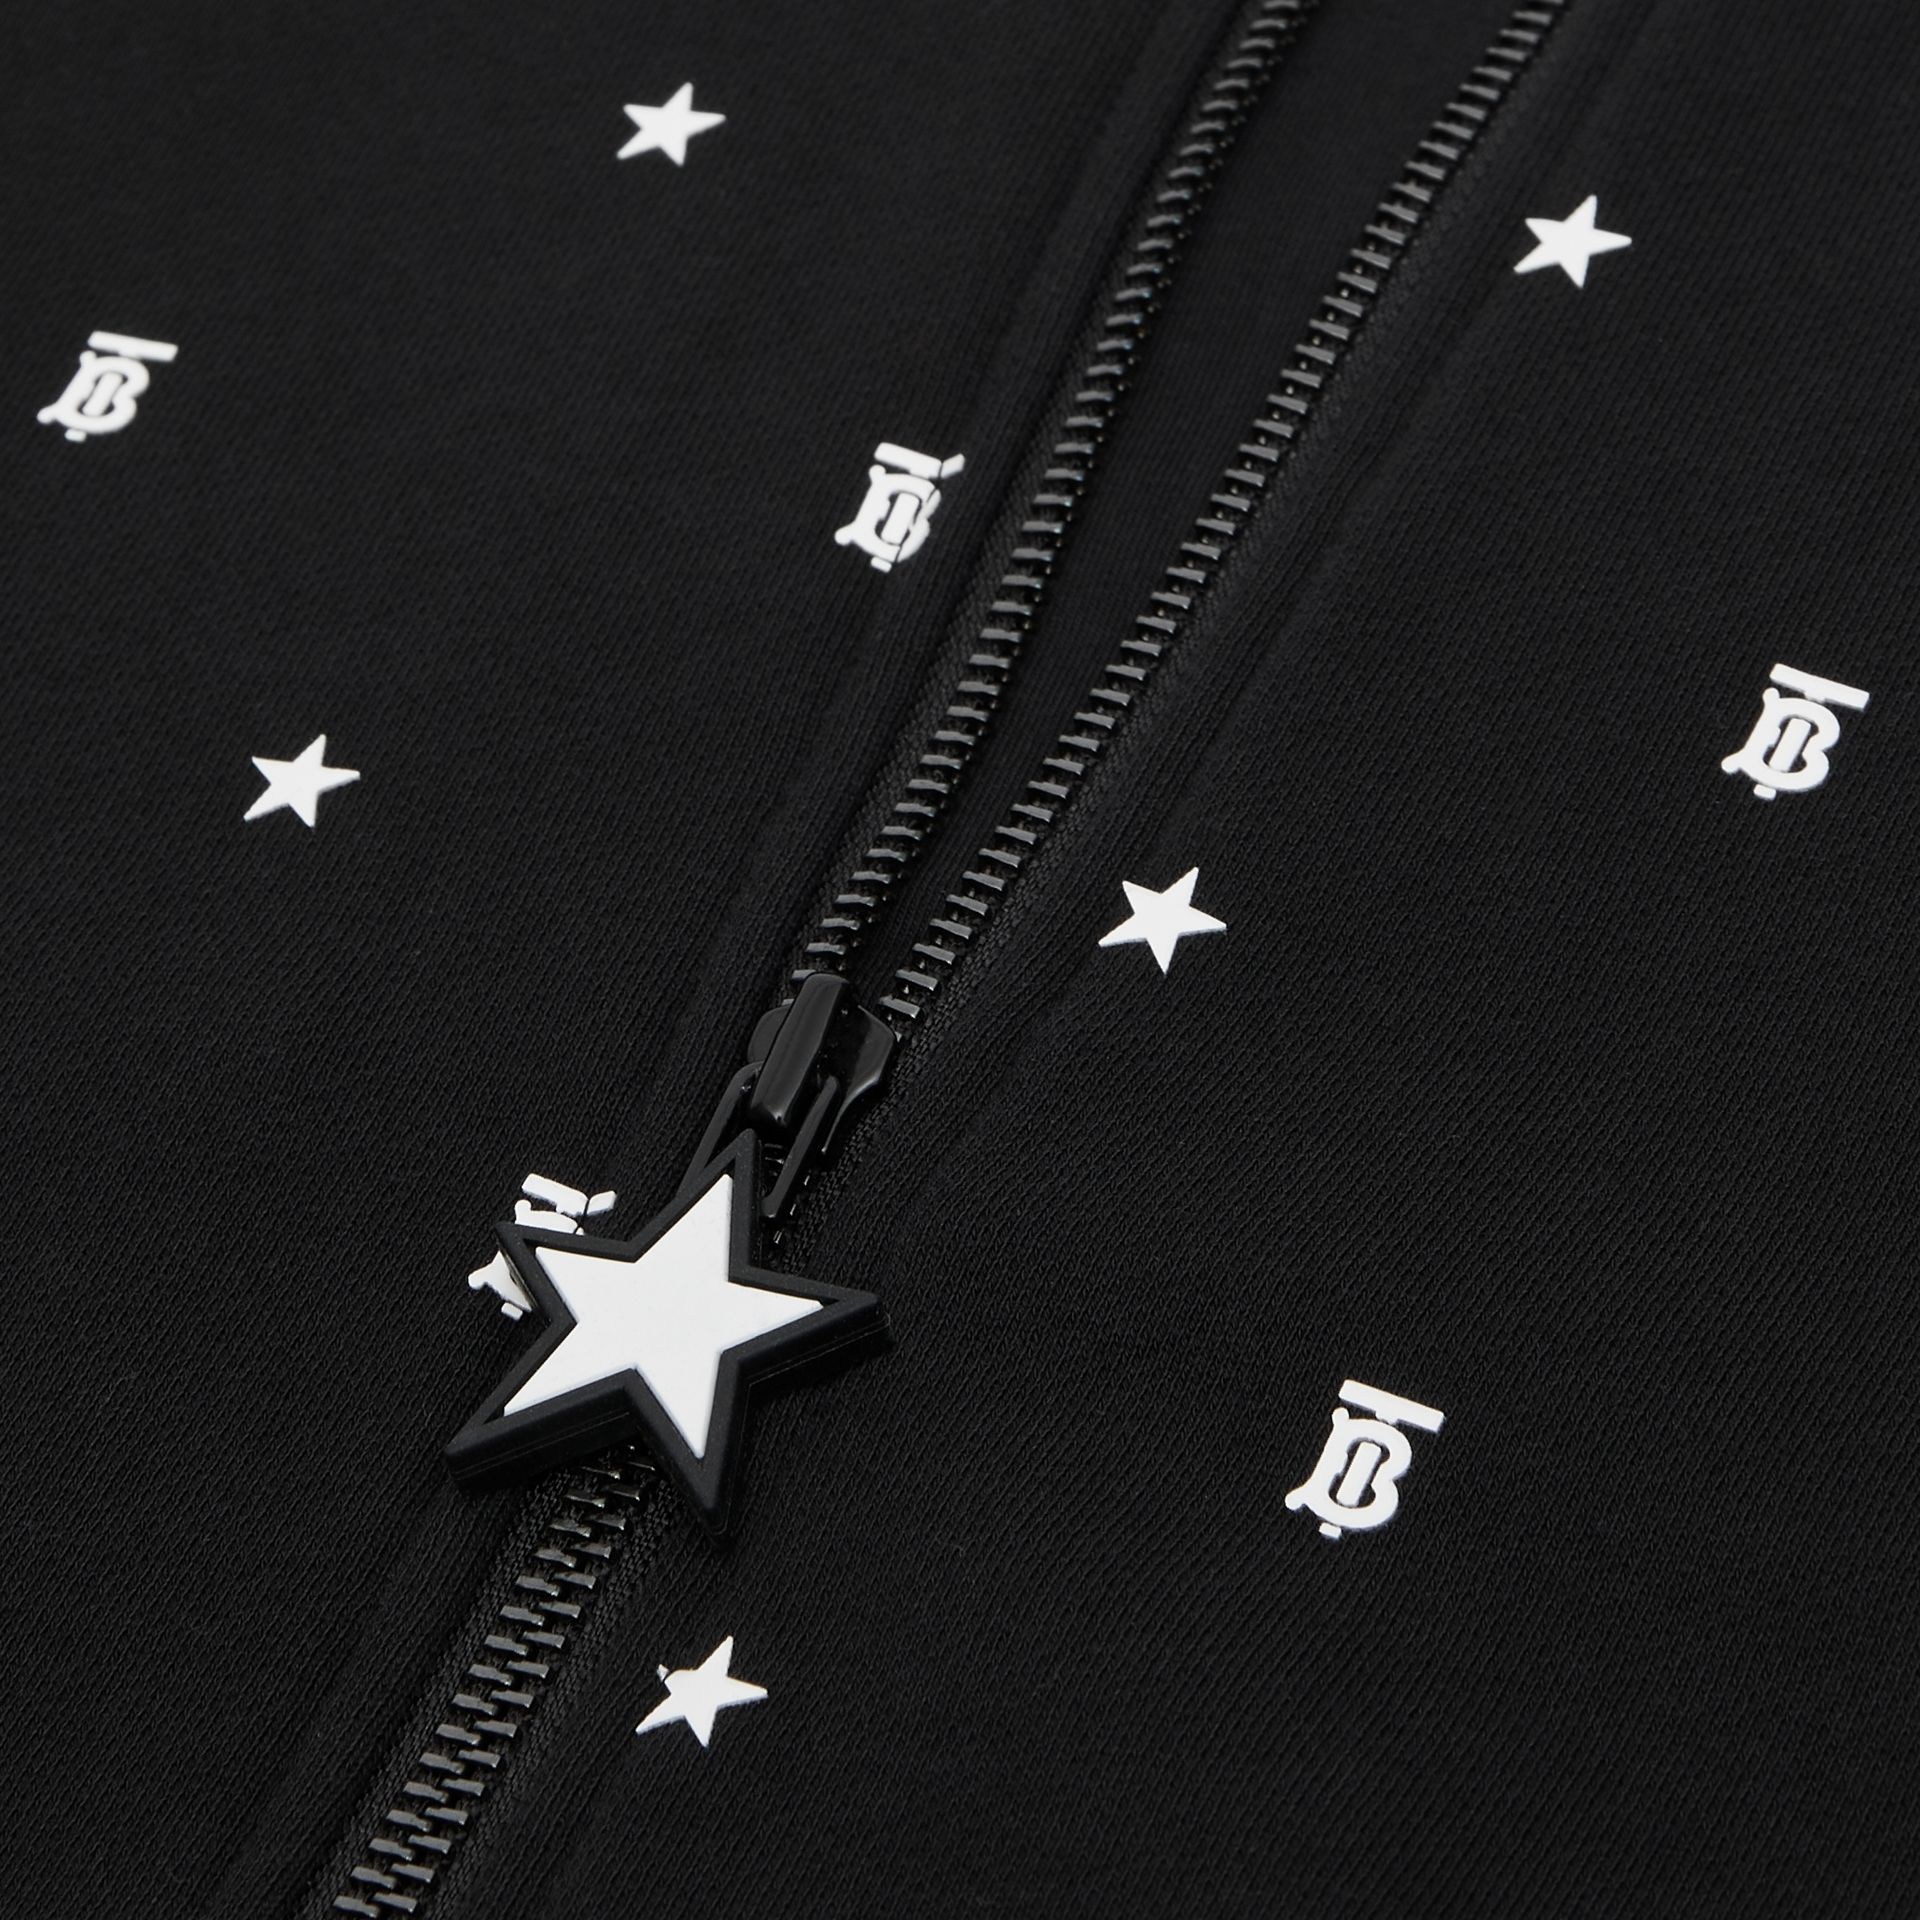 Star and Monogram Motif Cotton Hooded Top in Black | Burberry - gallery image 1